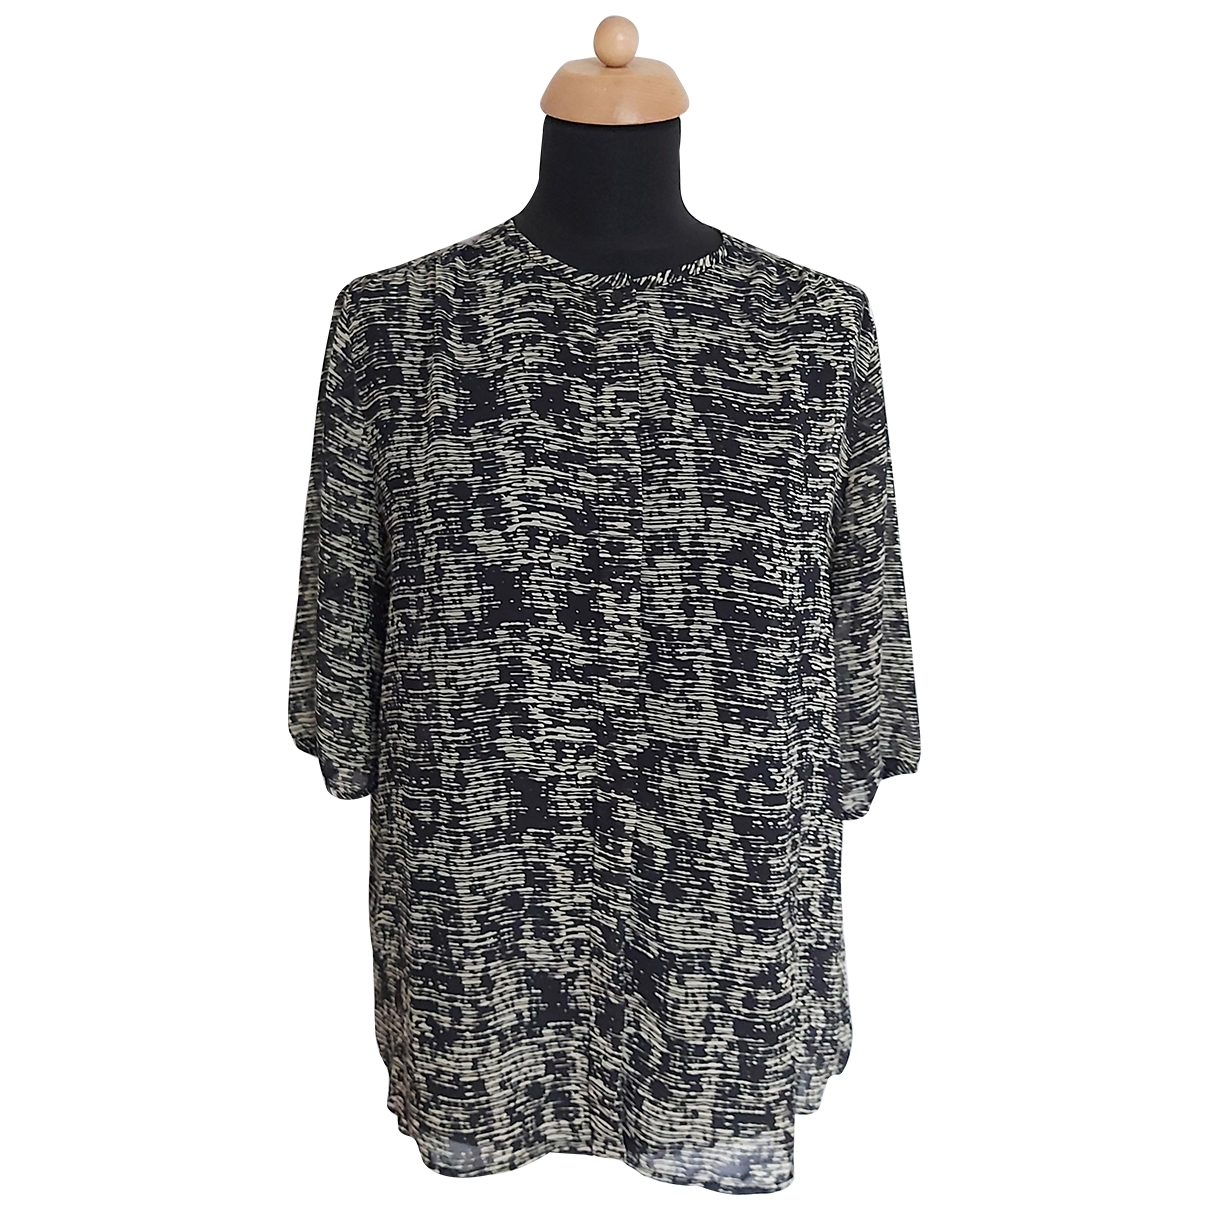 Maison Scotch \N Top in  Bunt Polyester